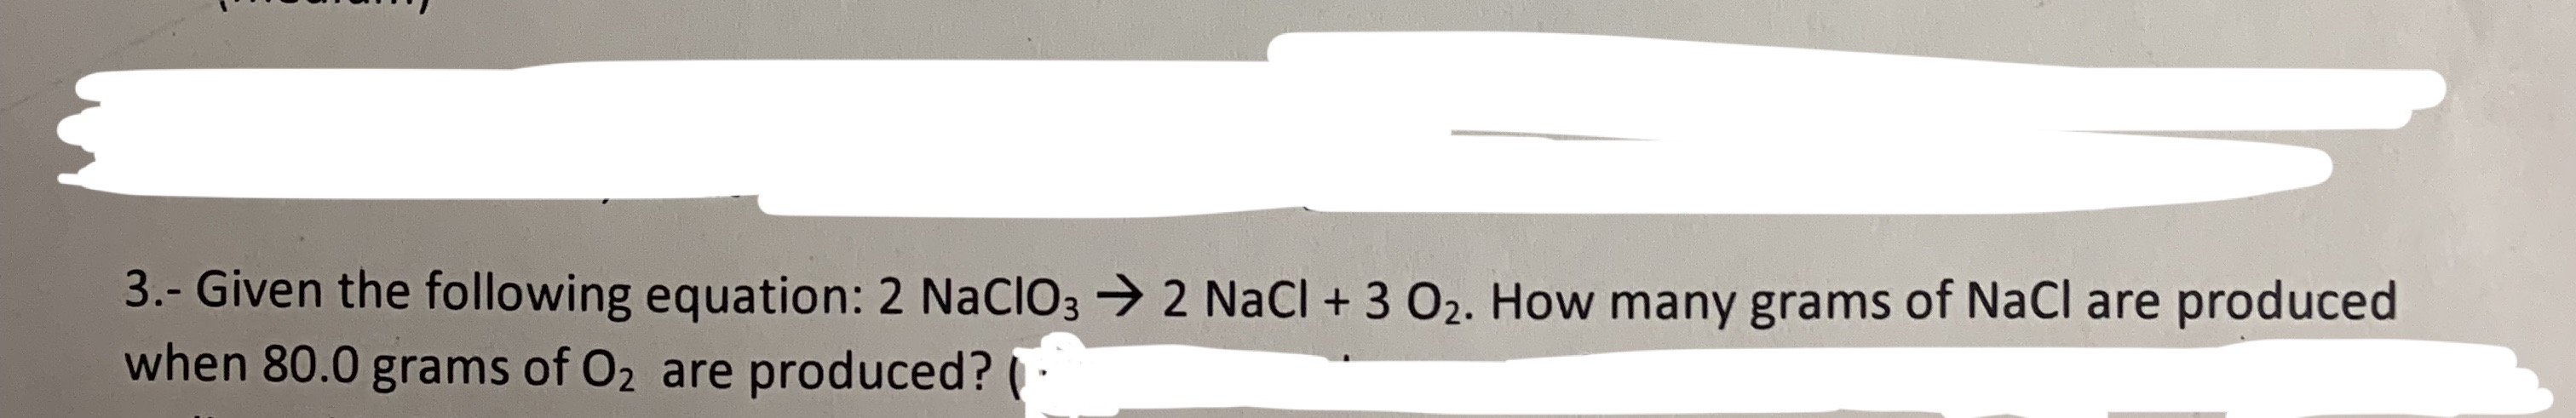 3.- Given the following equation: 2 NACIO32 NaCl + 3 O2. How many grams of NaCl are produced when 80.0 grams of O2 are produced?